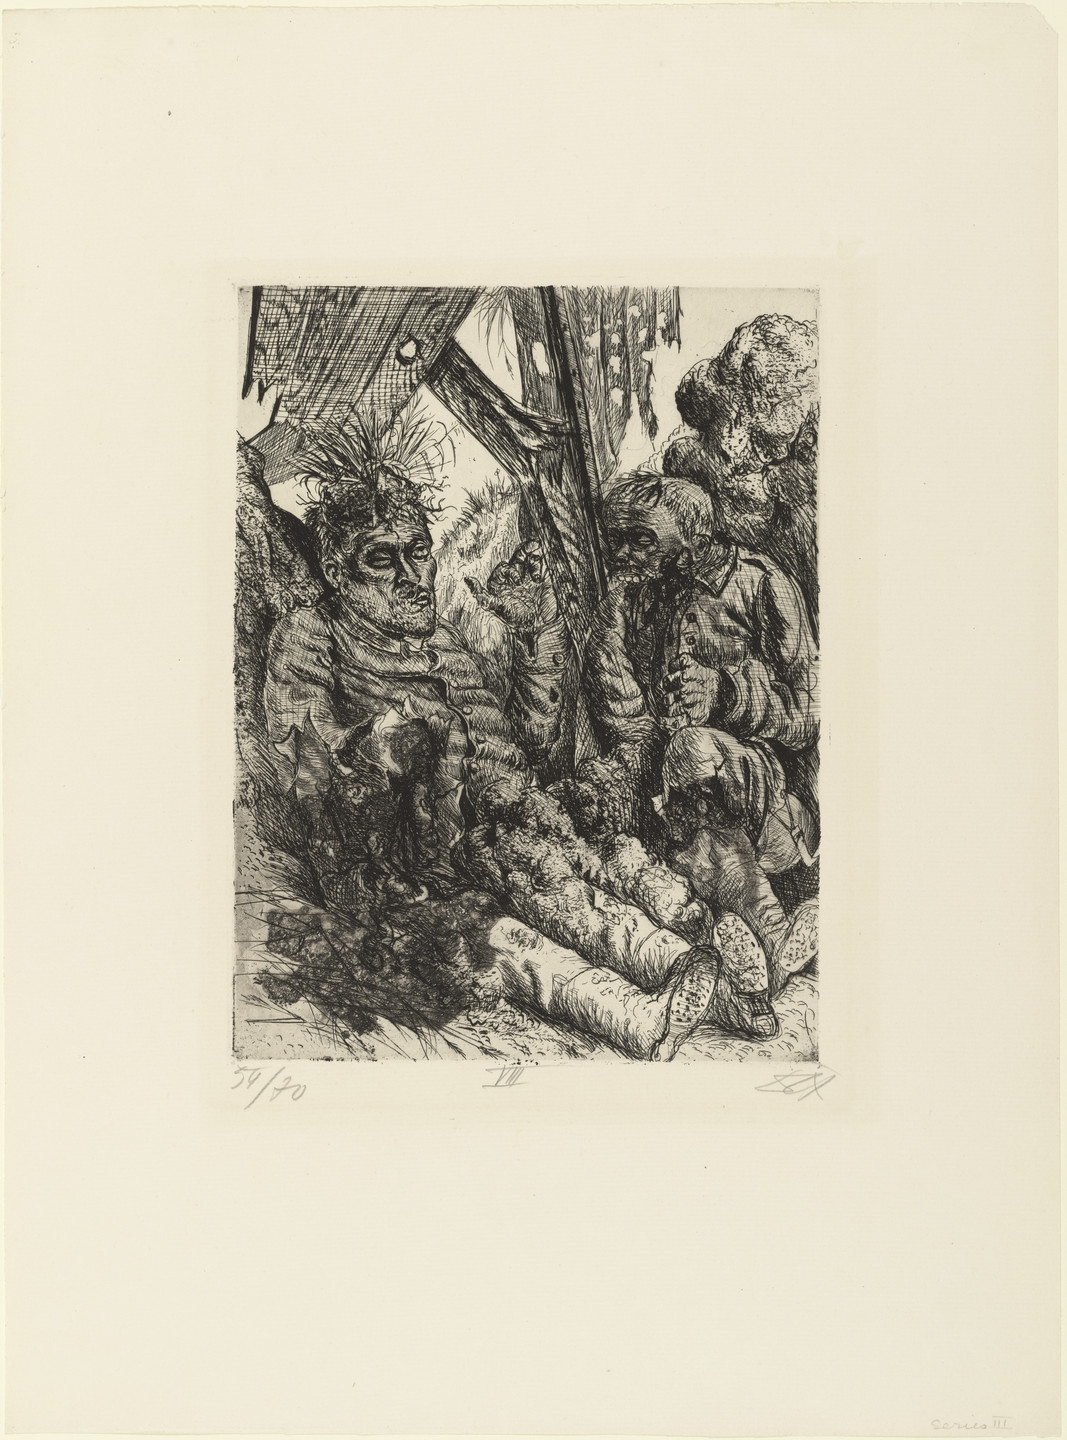 Otto Dix. _Seen on the Escarpment at Cléry-sur-Somme (Gesehen am Steilhang von Cléry-sur-Somme) _ from The War (Der Krieg). (1924)